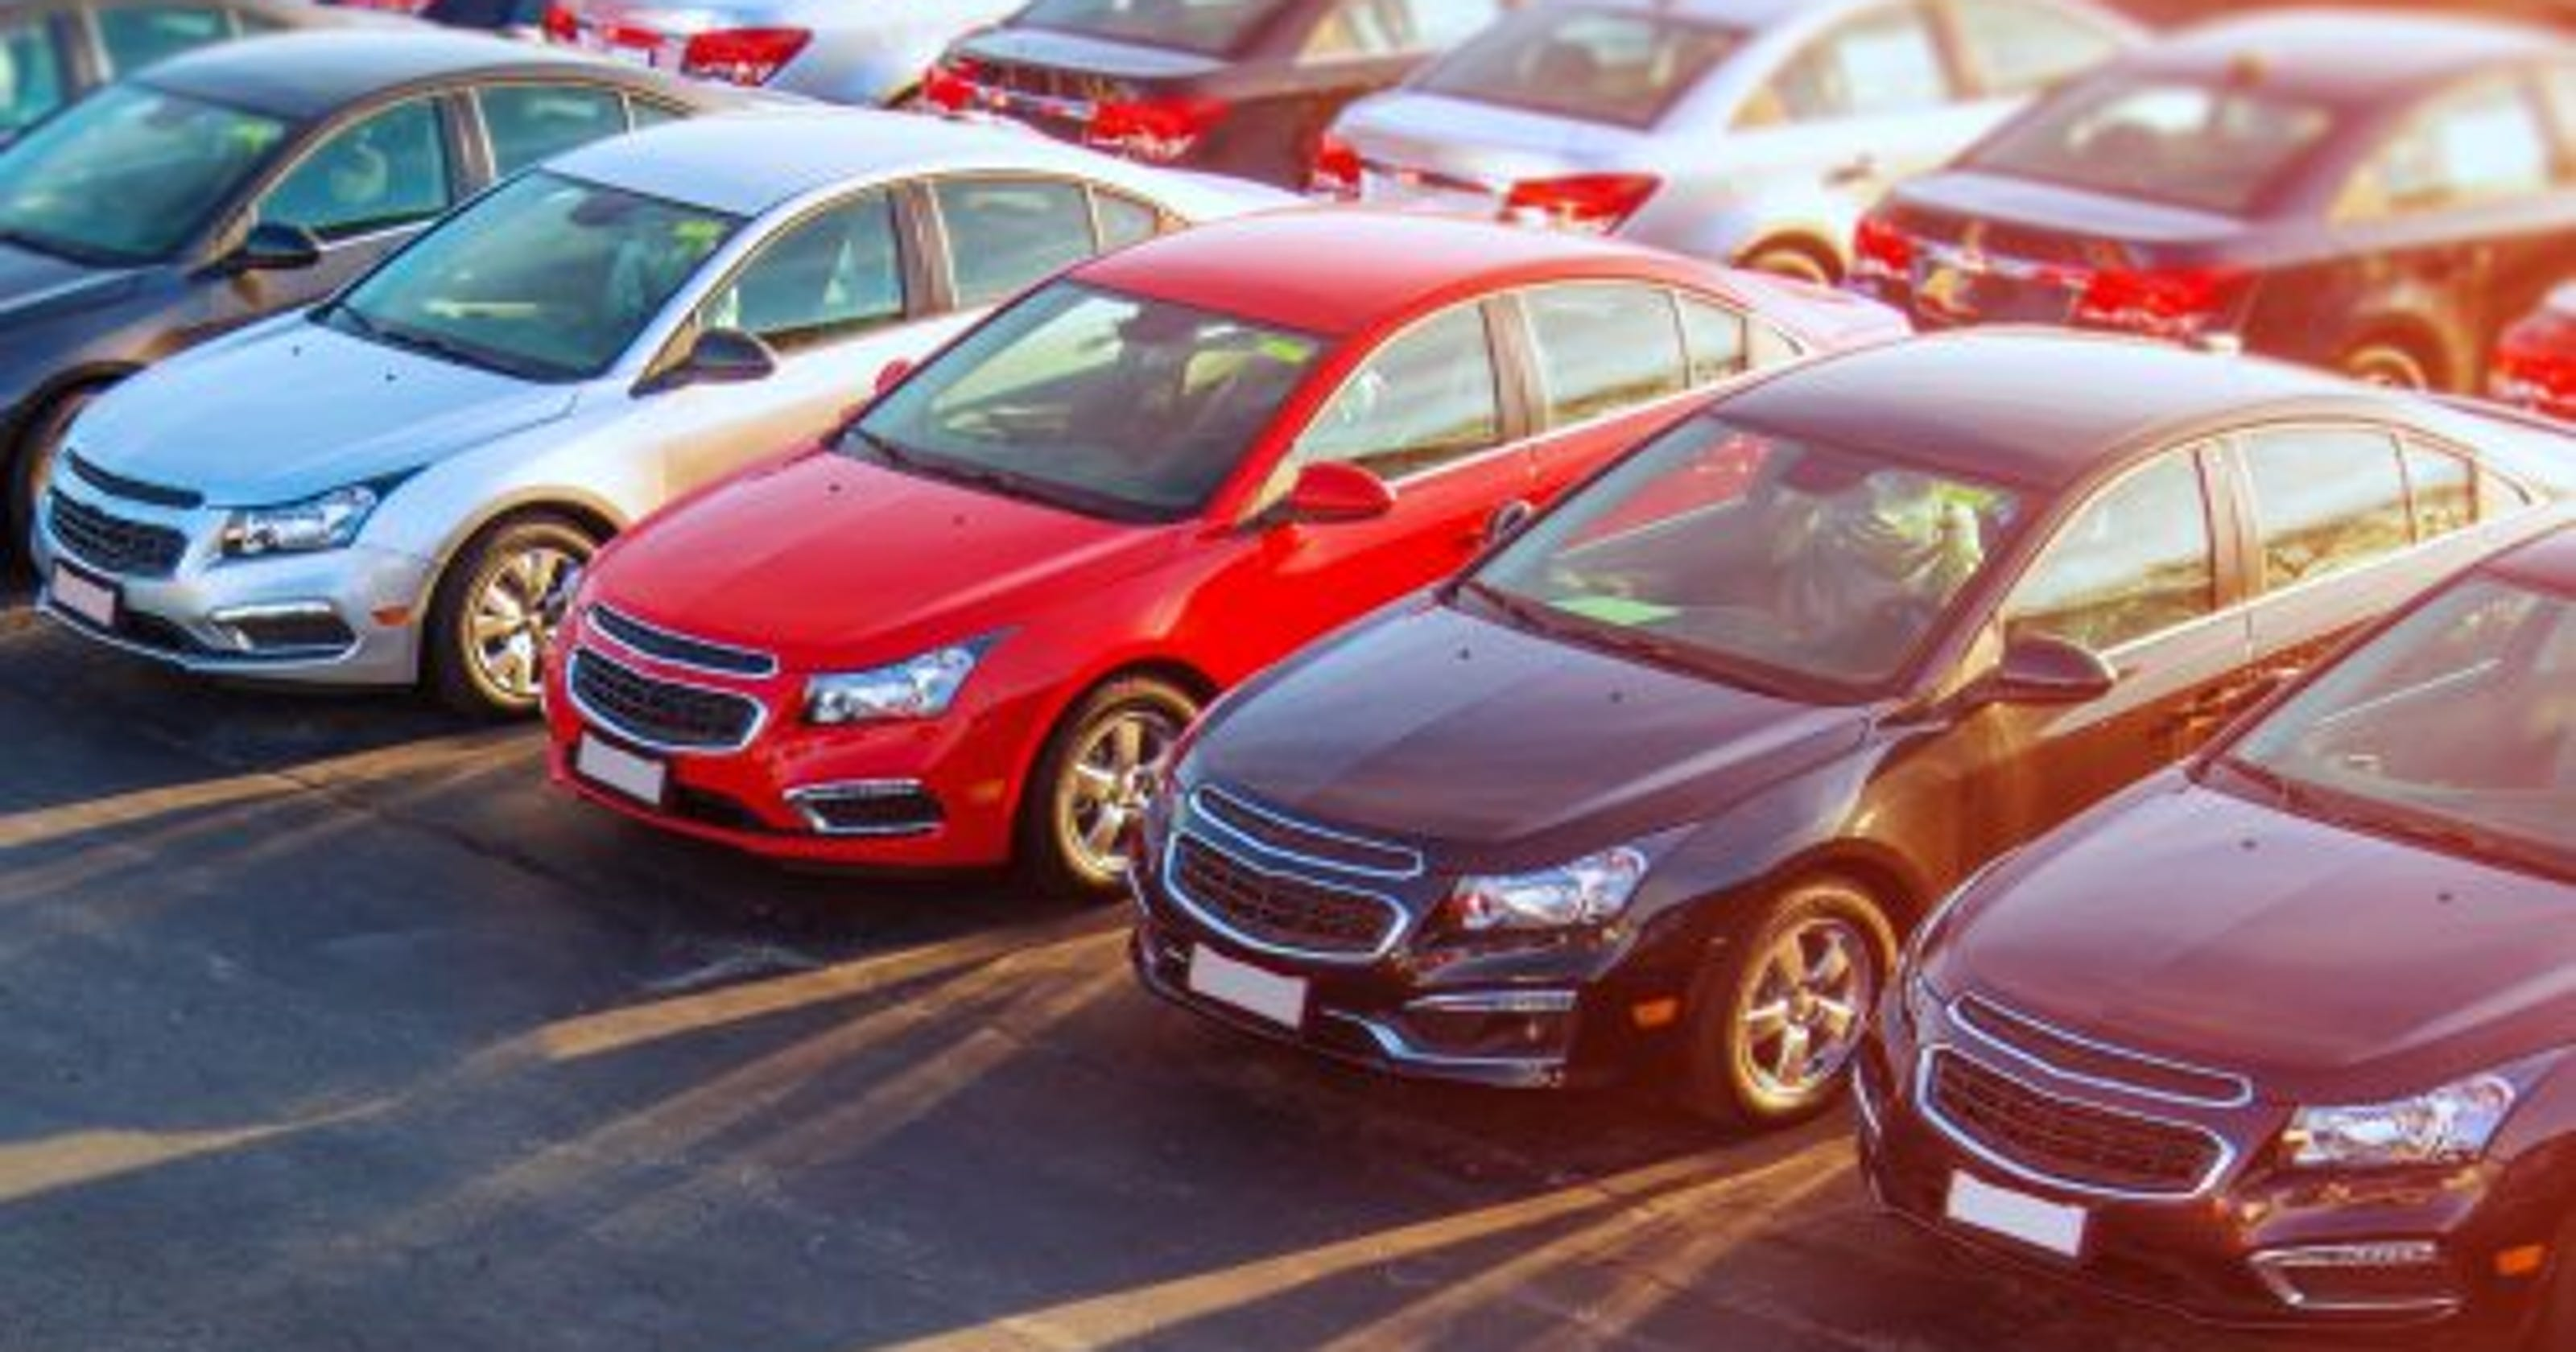 Used Car Price A 13 Year High As More Late Model Cars Come Off Lease